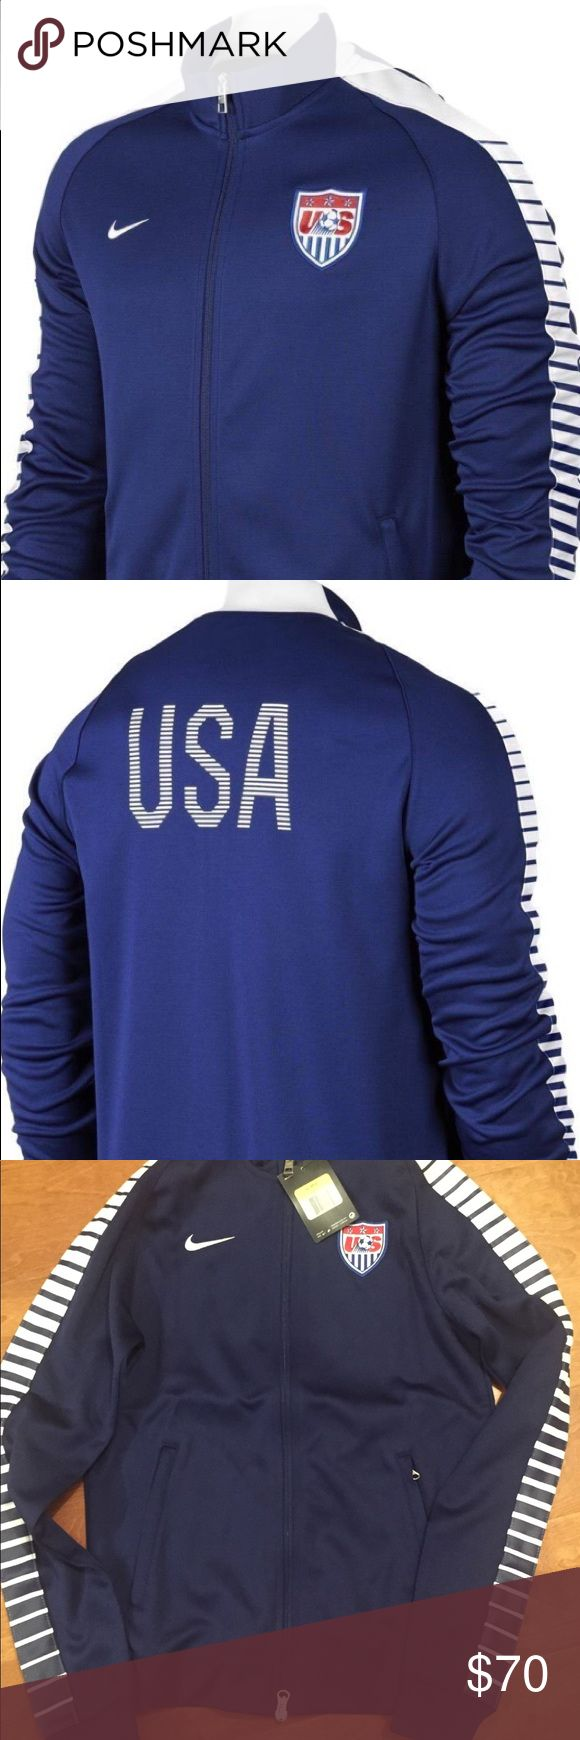 Nike USA Authentic Track Jacket National Team Thank you for looking!  NIKE  N98  USA  Womens  AUTHENTIC TRACK JACKET  BLUE WHITE ( blue and white stripes on the sleeves) Full Zip  Size S Nike Tops Sweatshirts & Hoodies